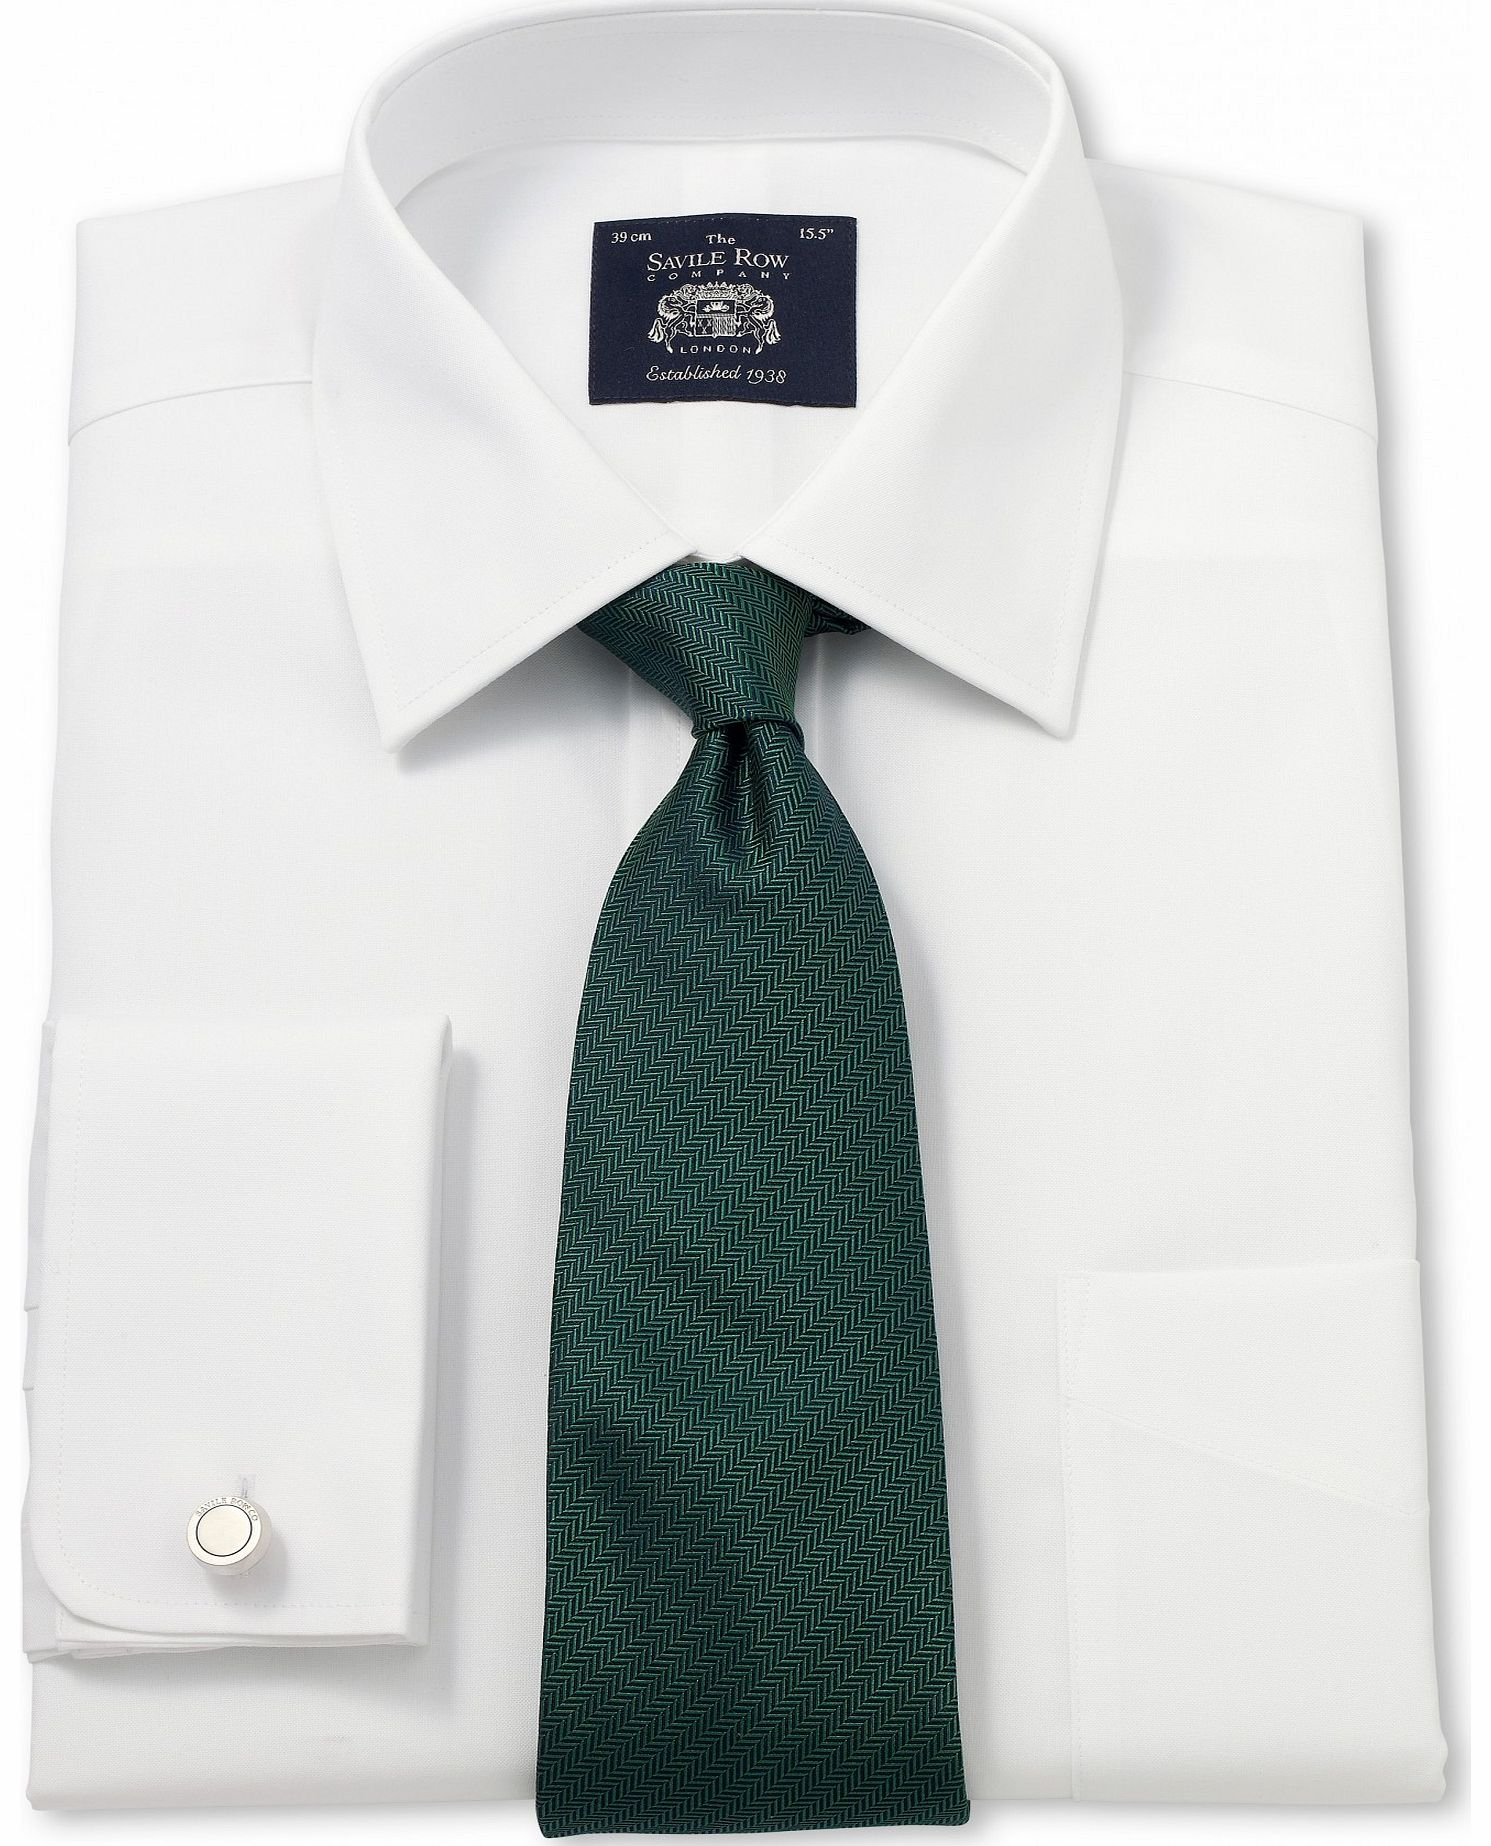 Savile Row Company White Non-Iron Classic Fit Shirt 15`` Double product image